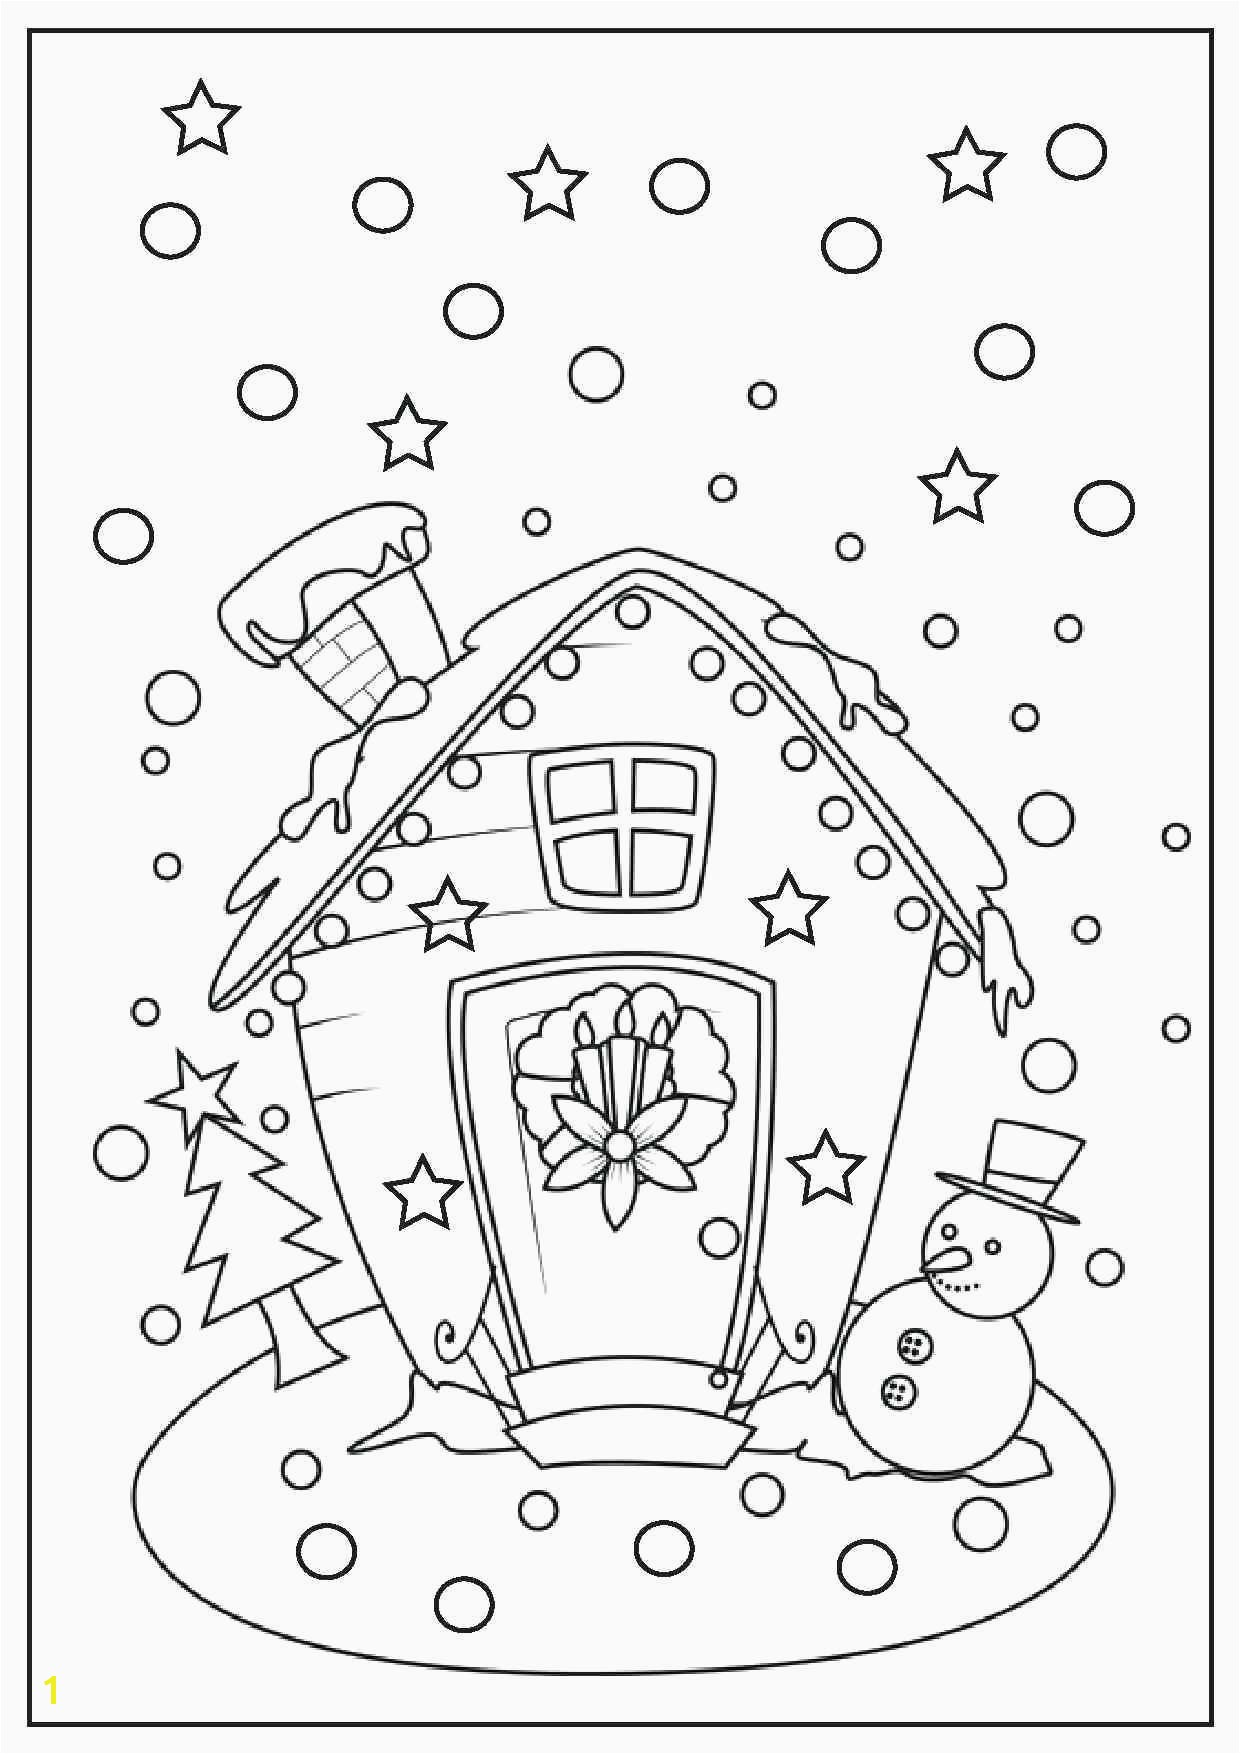 Blank Christmas ornament Coloring Page Cool Printable Coloring Pages Fresh Cool Od Dog Coloring Pages Free